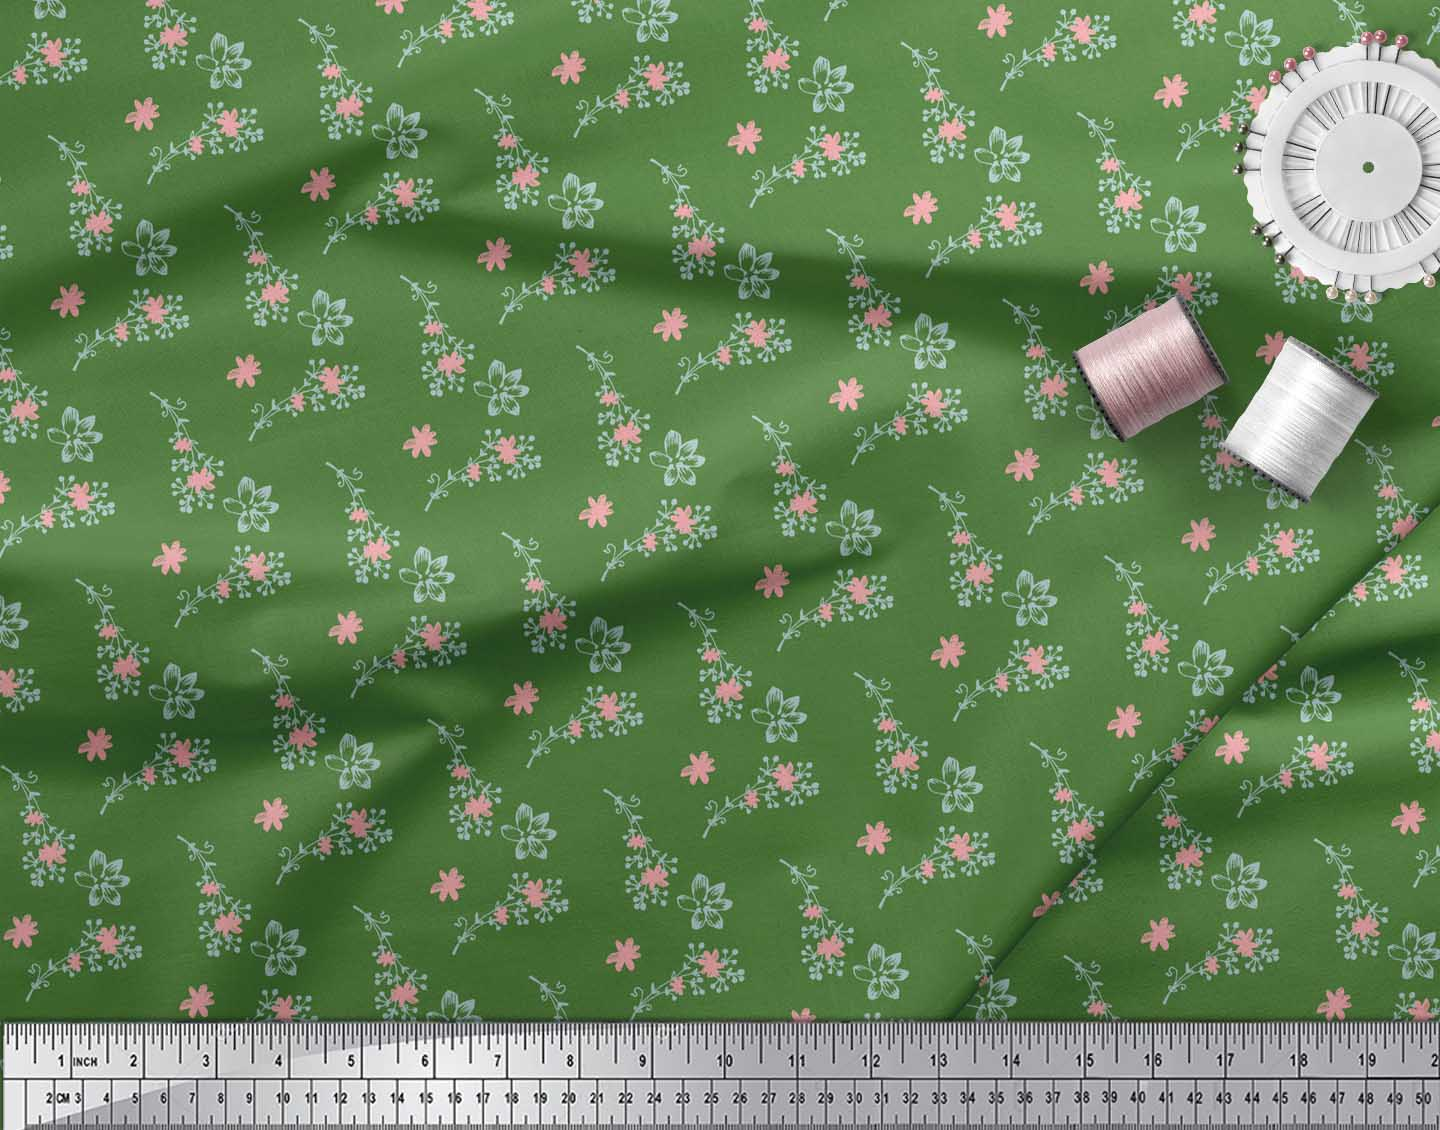 Soimoi-Green-Cotton-Poplin-Fabric-Flower-Bud-Floral-Printed-Craft-ZQw thumbnail 4